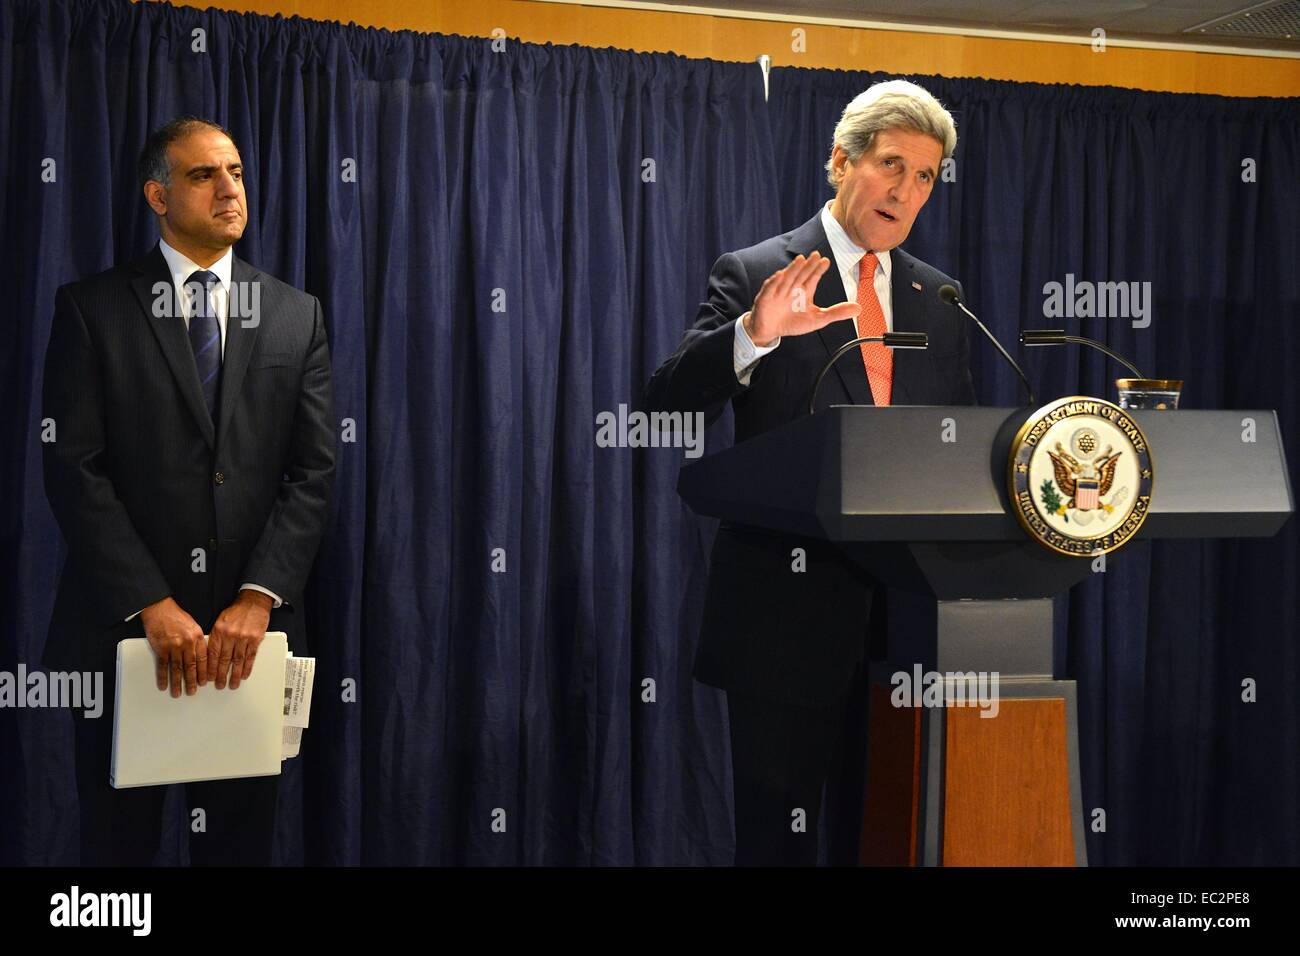 US Secretary of State John Kerry with Assistant Secretary of State for Political-Military Affairs Puneet Talwar - Stock Image